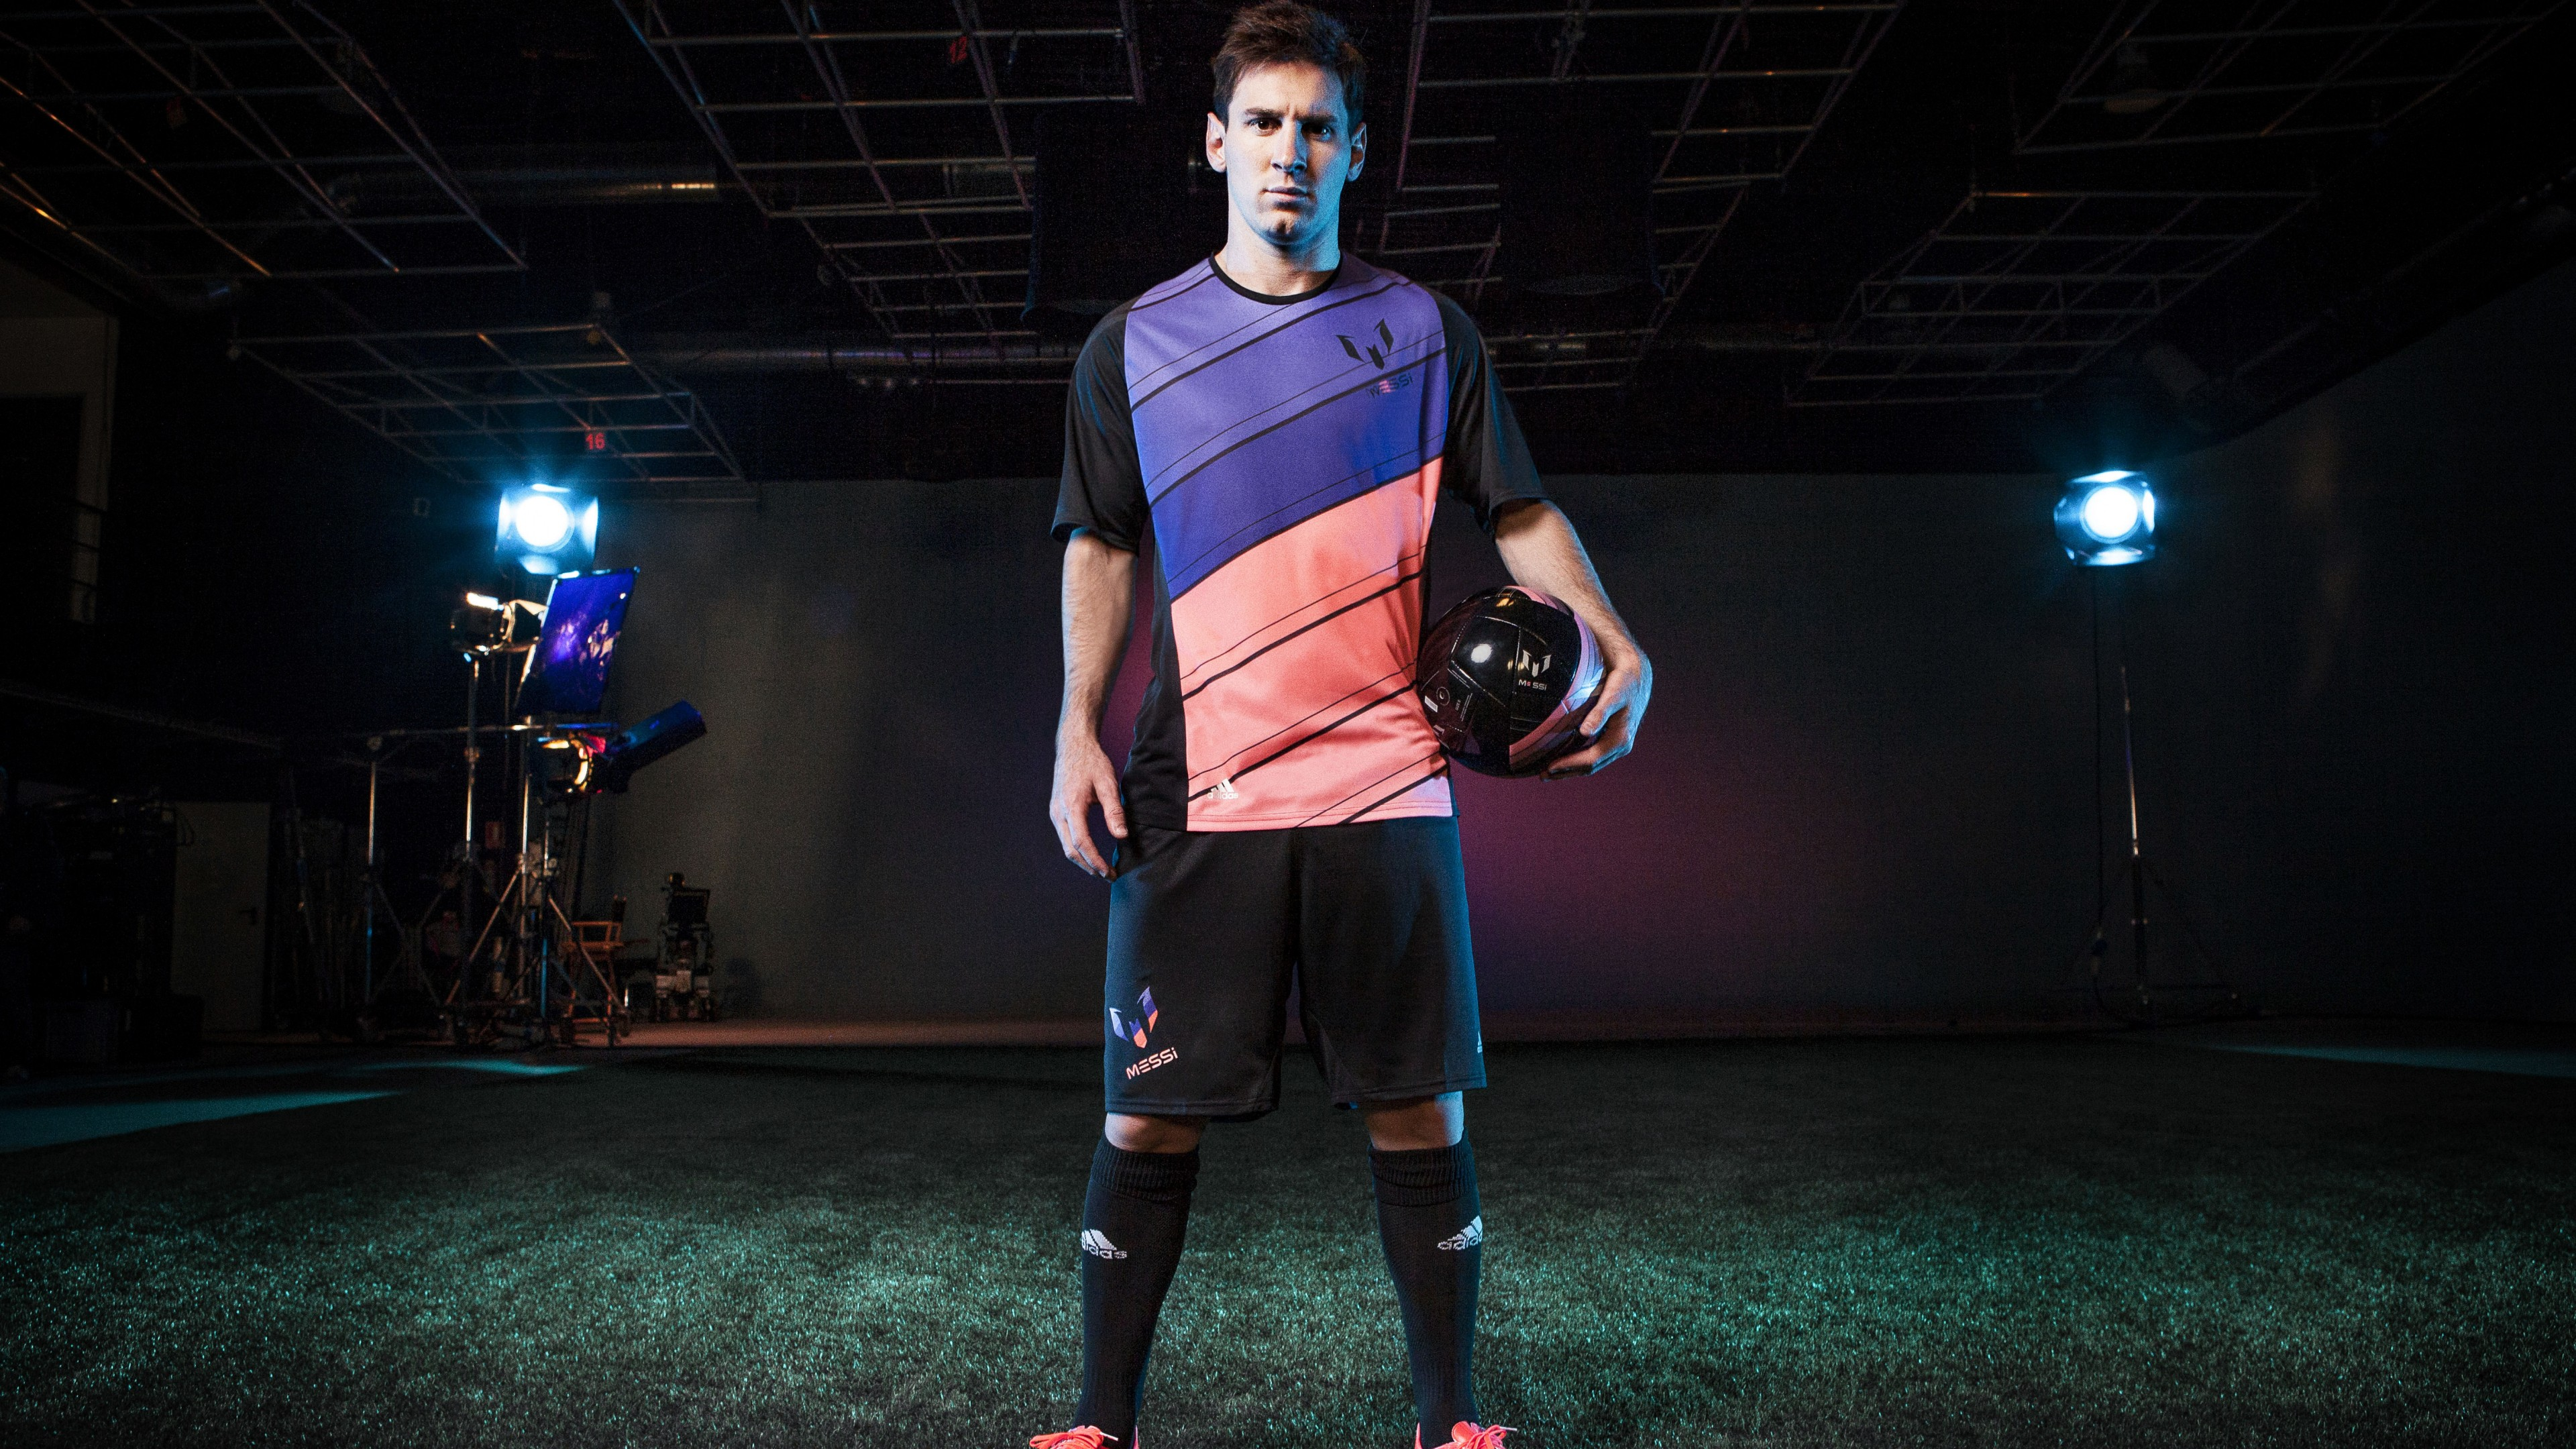 2016 lionel messi 1538786721 - 2016 Lionel Messi - sports wallpapers, Lionel Messi wallpapers, leo messi wallpapers, football wallpapers, fcb wallpapers, fc barcelona wallpapers